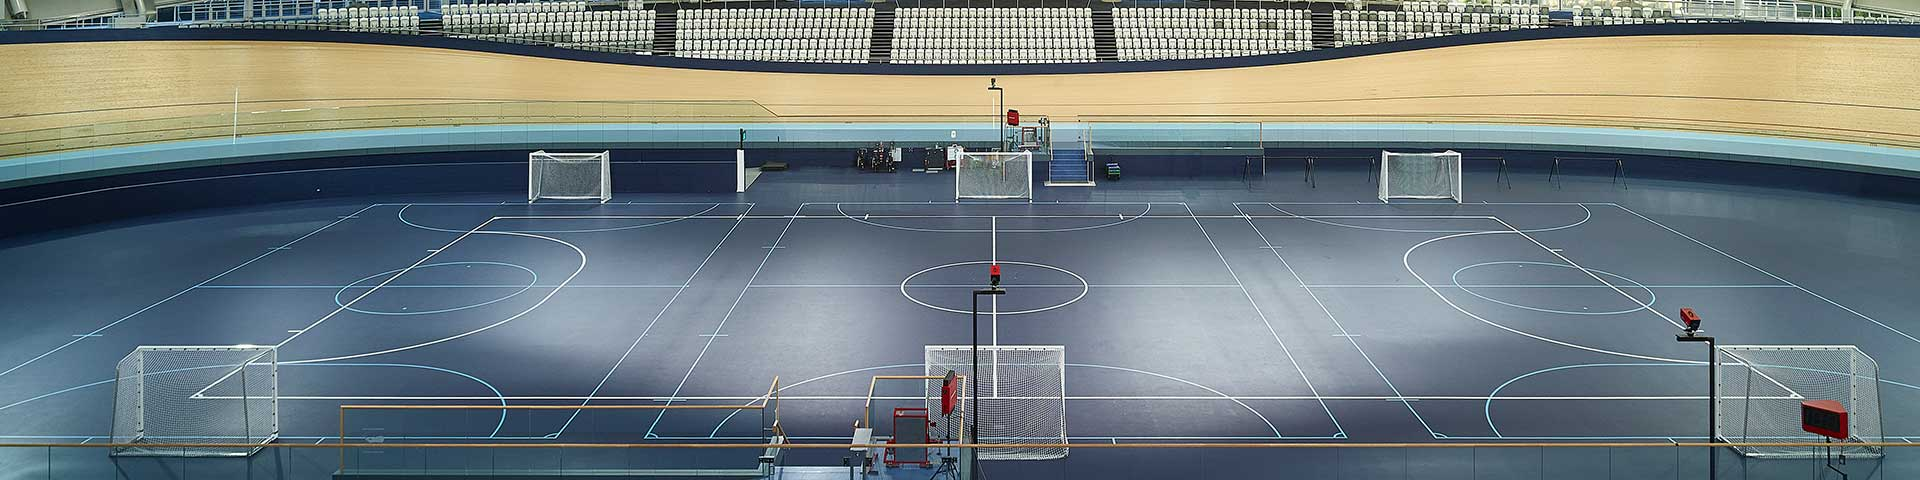 Futsal Courts at the Sleeman Sports Complex